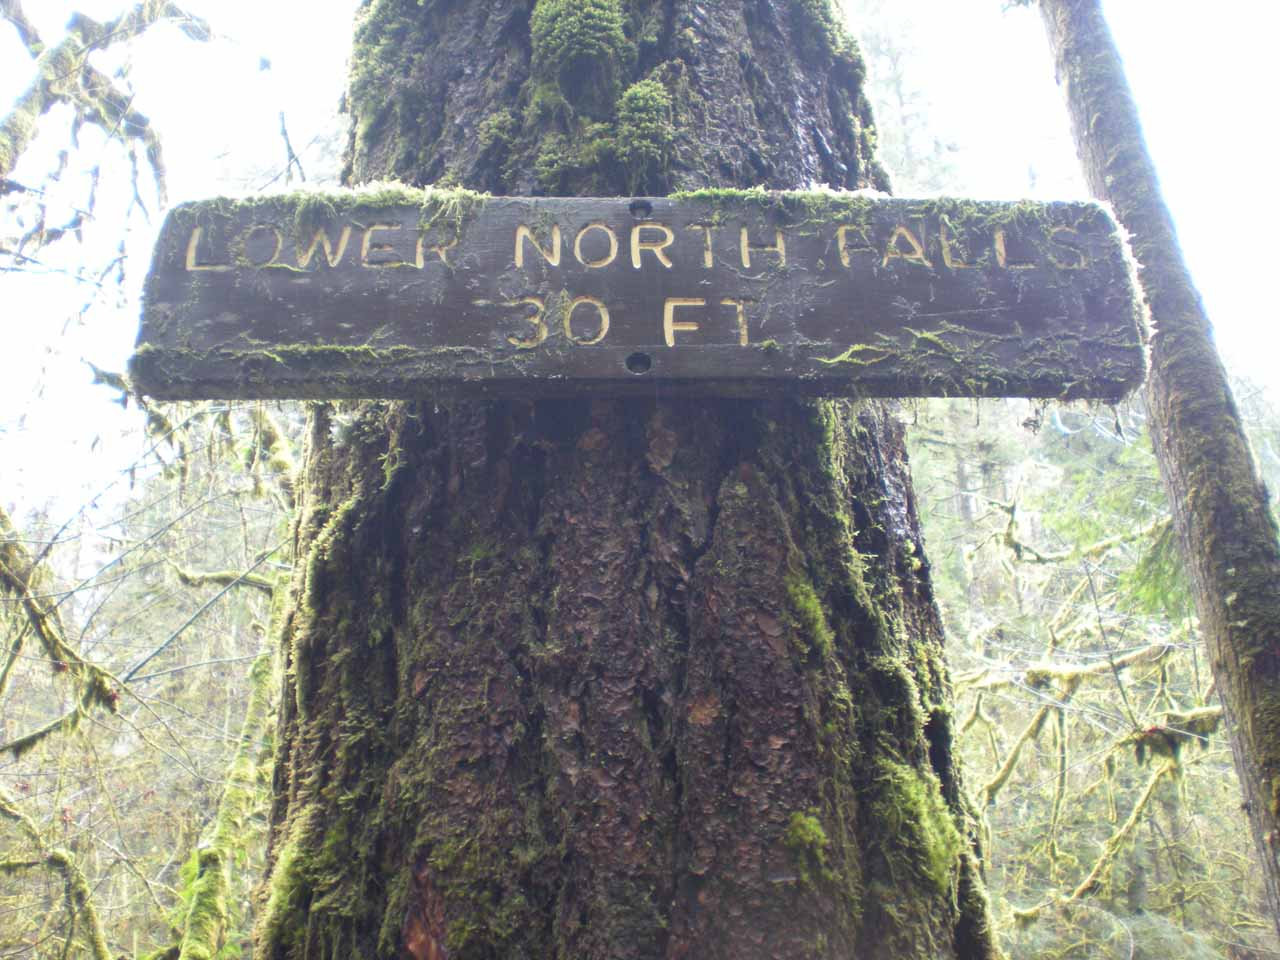 Sign indicating the Lower North Falls' height